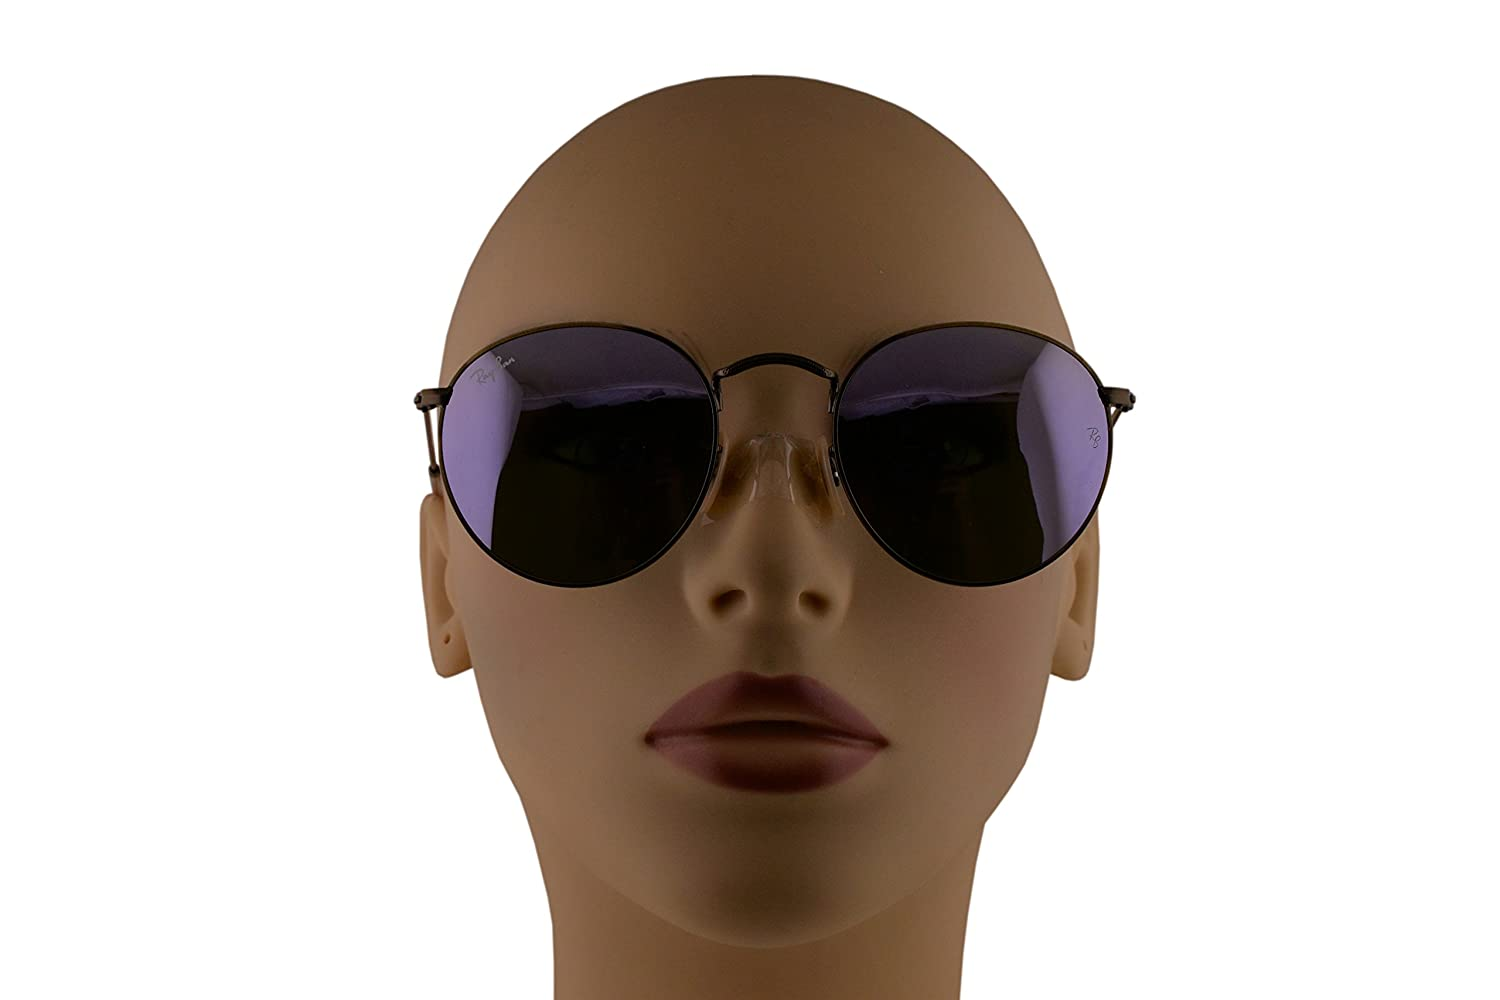 87973e14320 Amazon.com  Ray-Ban RB3447 Round Metal Sunglasses Demiglos Brusched Bronze  w Lillac Mirror Lens 1674K RB 3447  Clothing